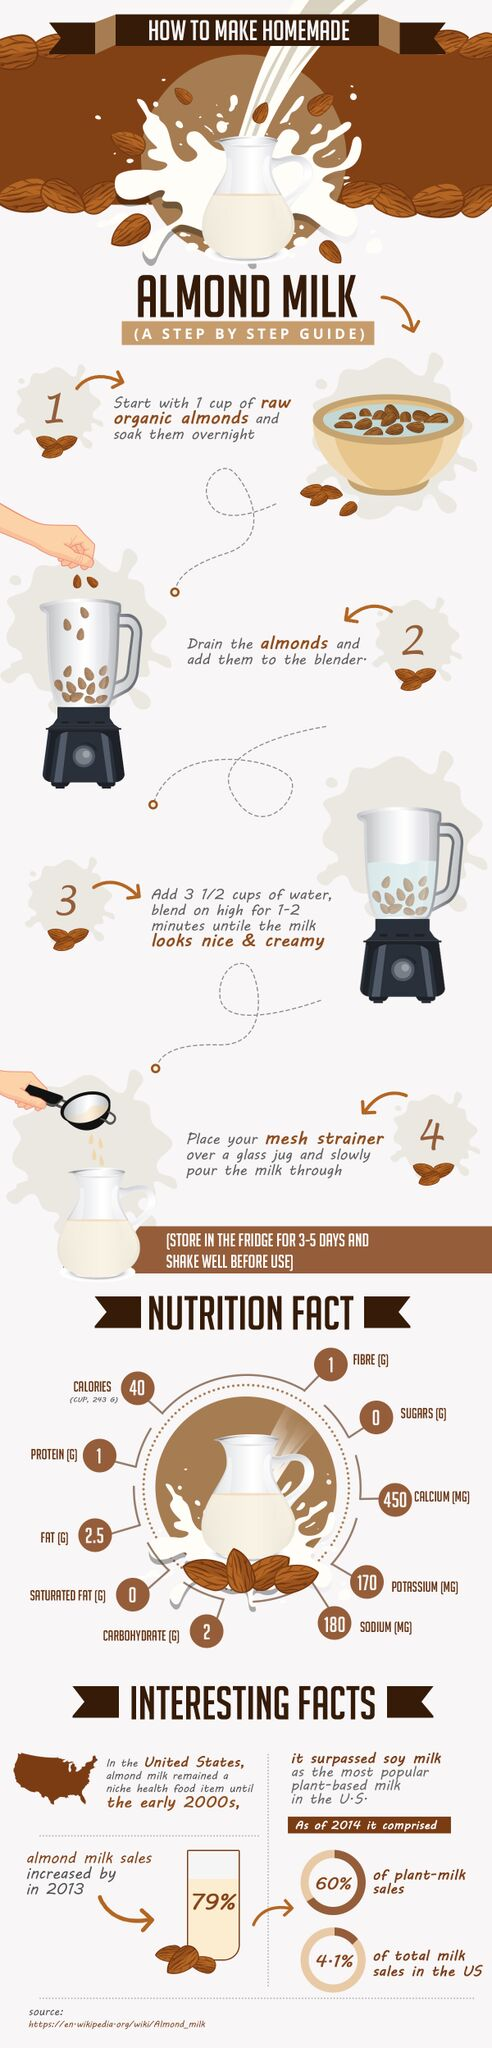 How to make delicious, homemade Almond Milk